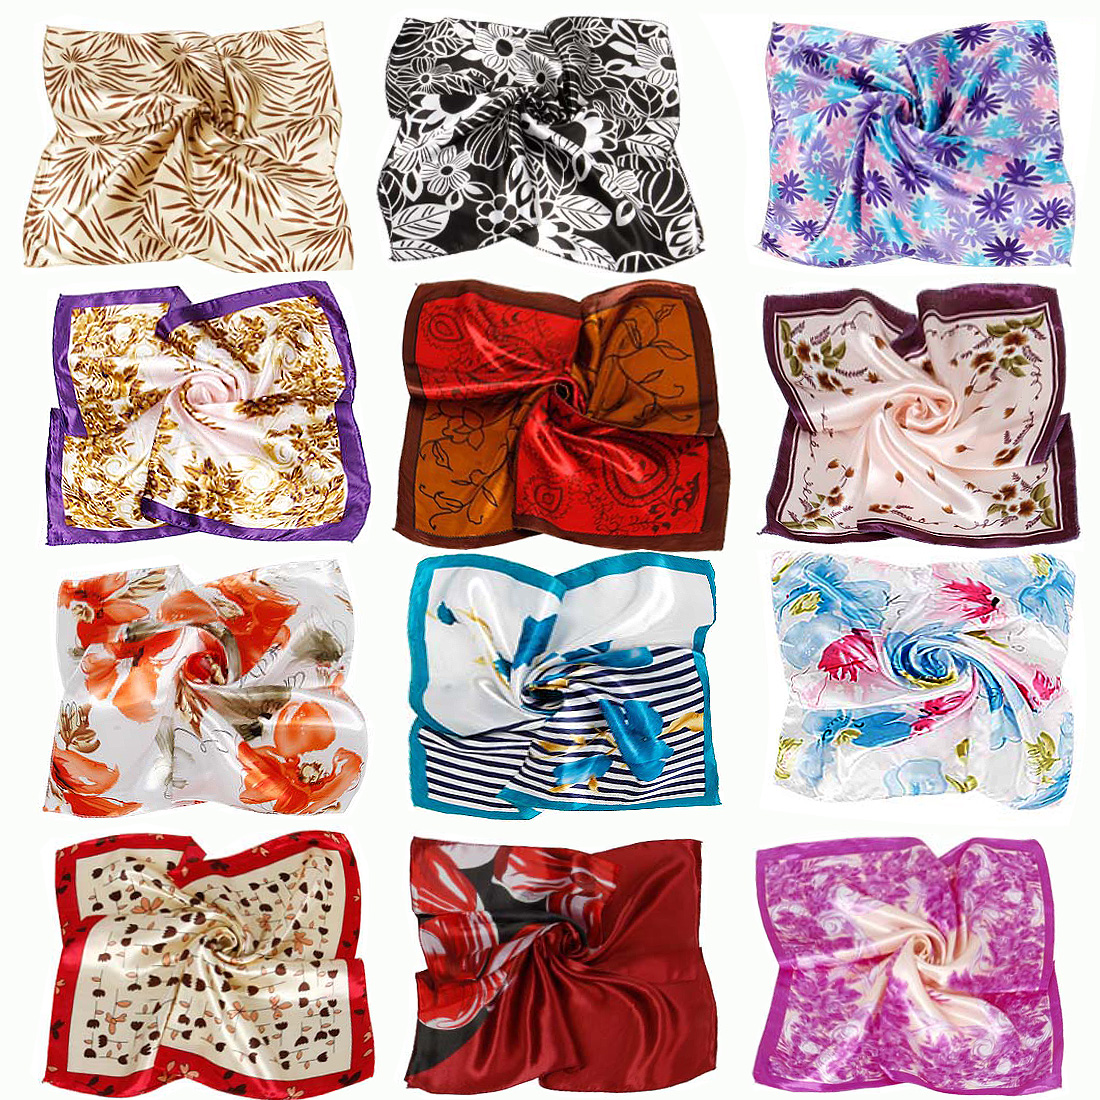 BMC Fashionable 12pc Mixed Patterns and Colors Womens Scarf Accessory Set